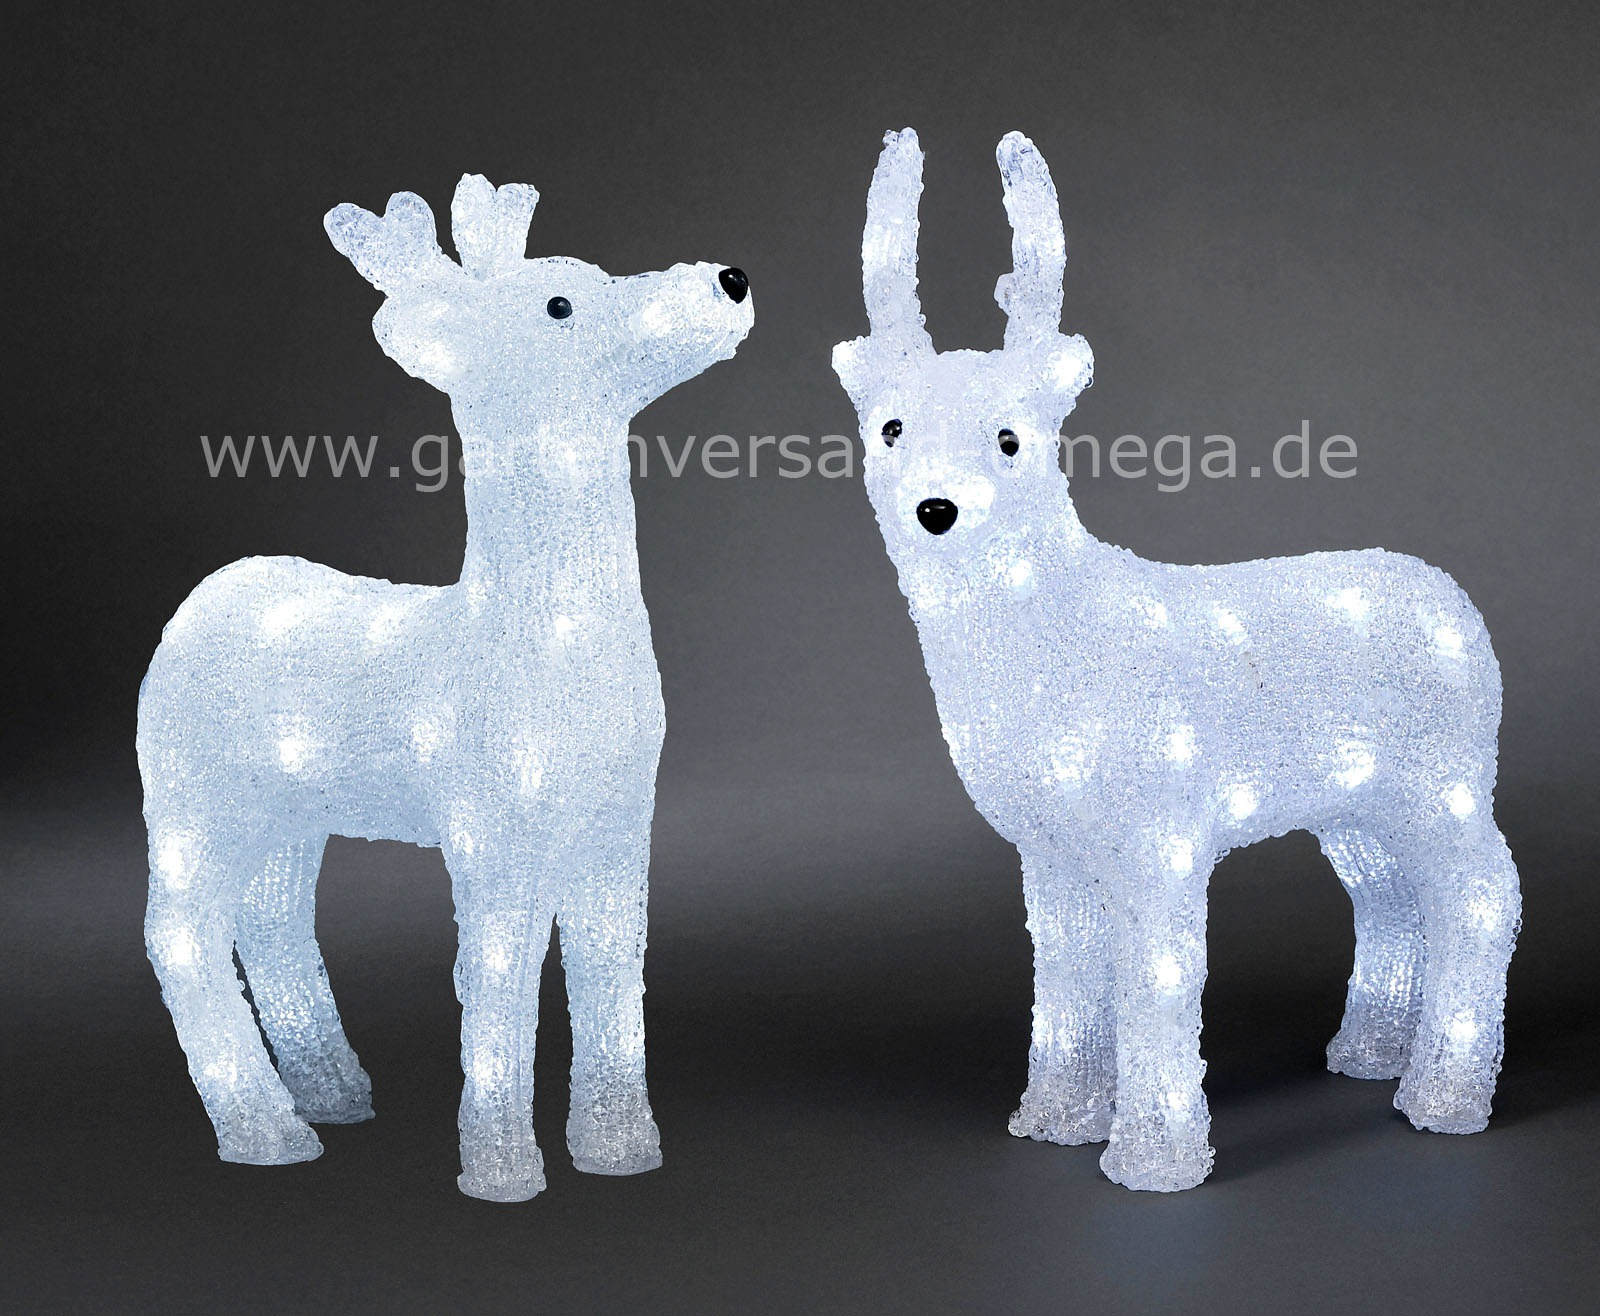 Led acryl rentier gro led tierfigur led rentier led for Weihnachtsbeleuchtung figuren